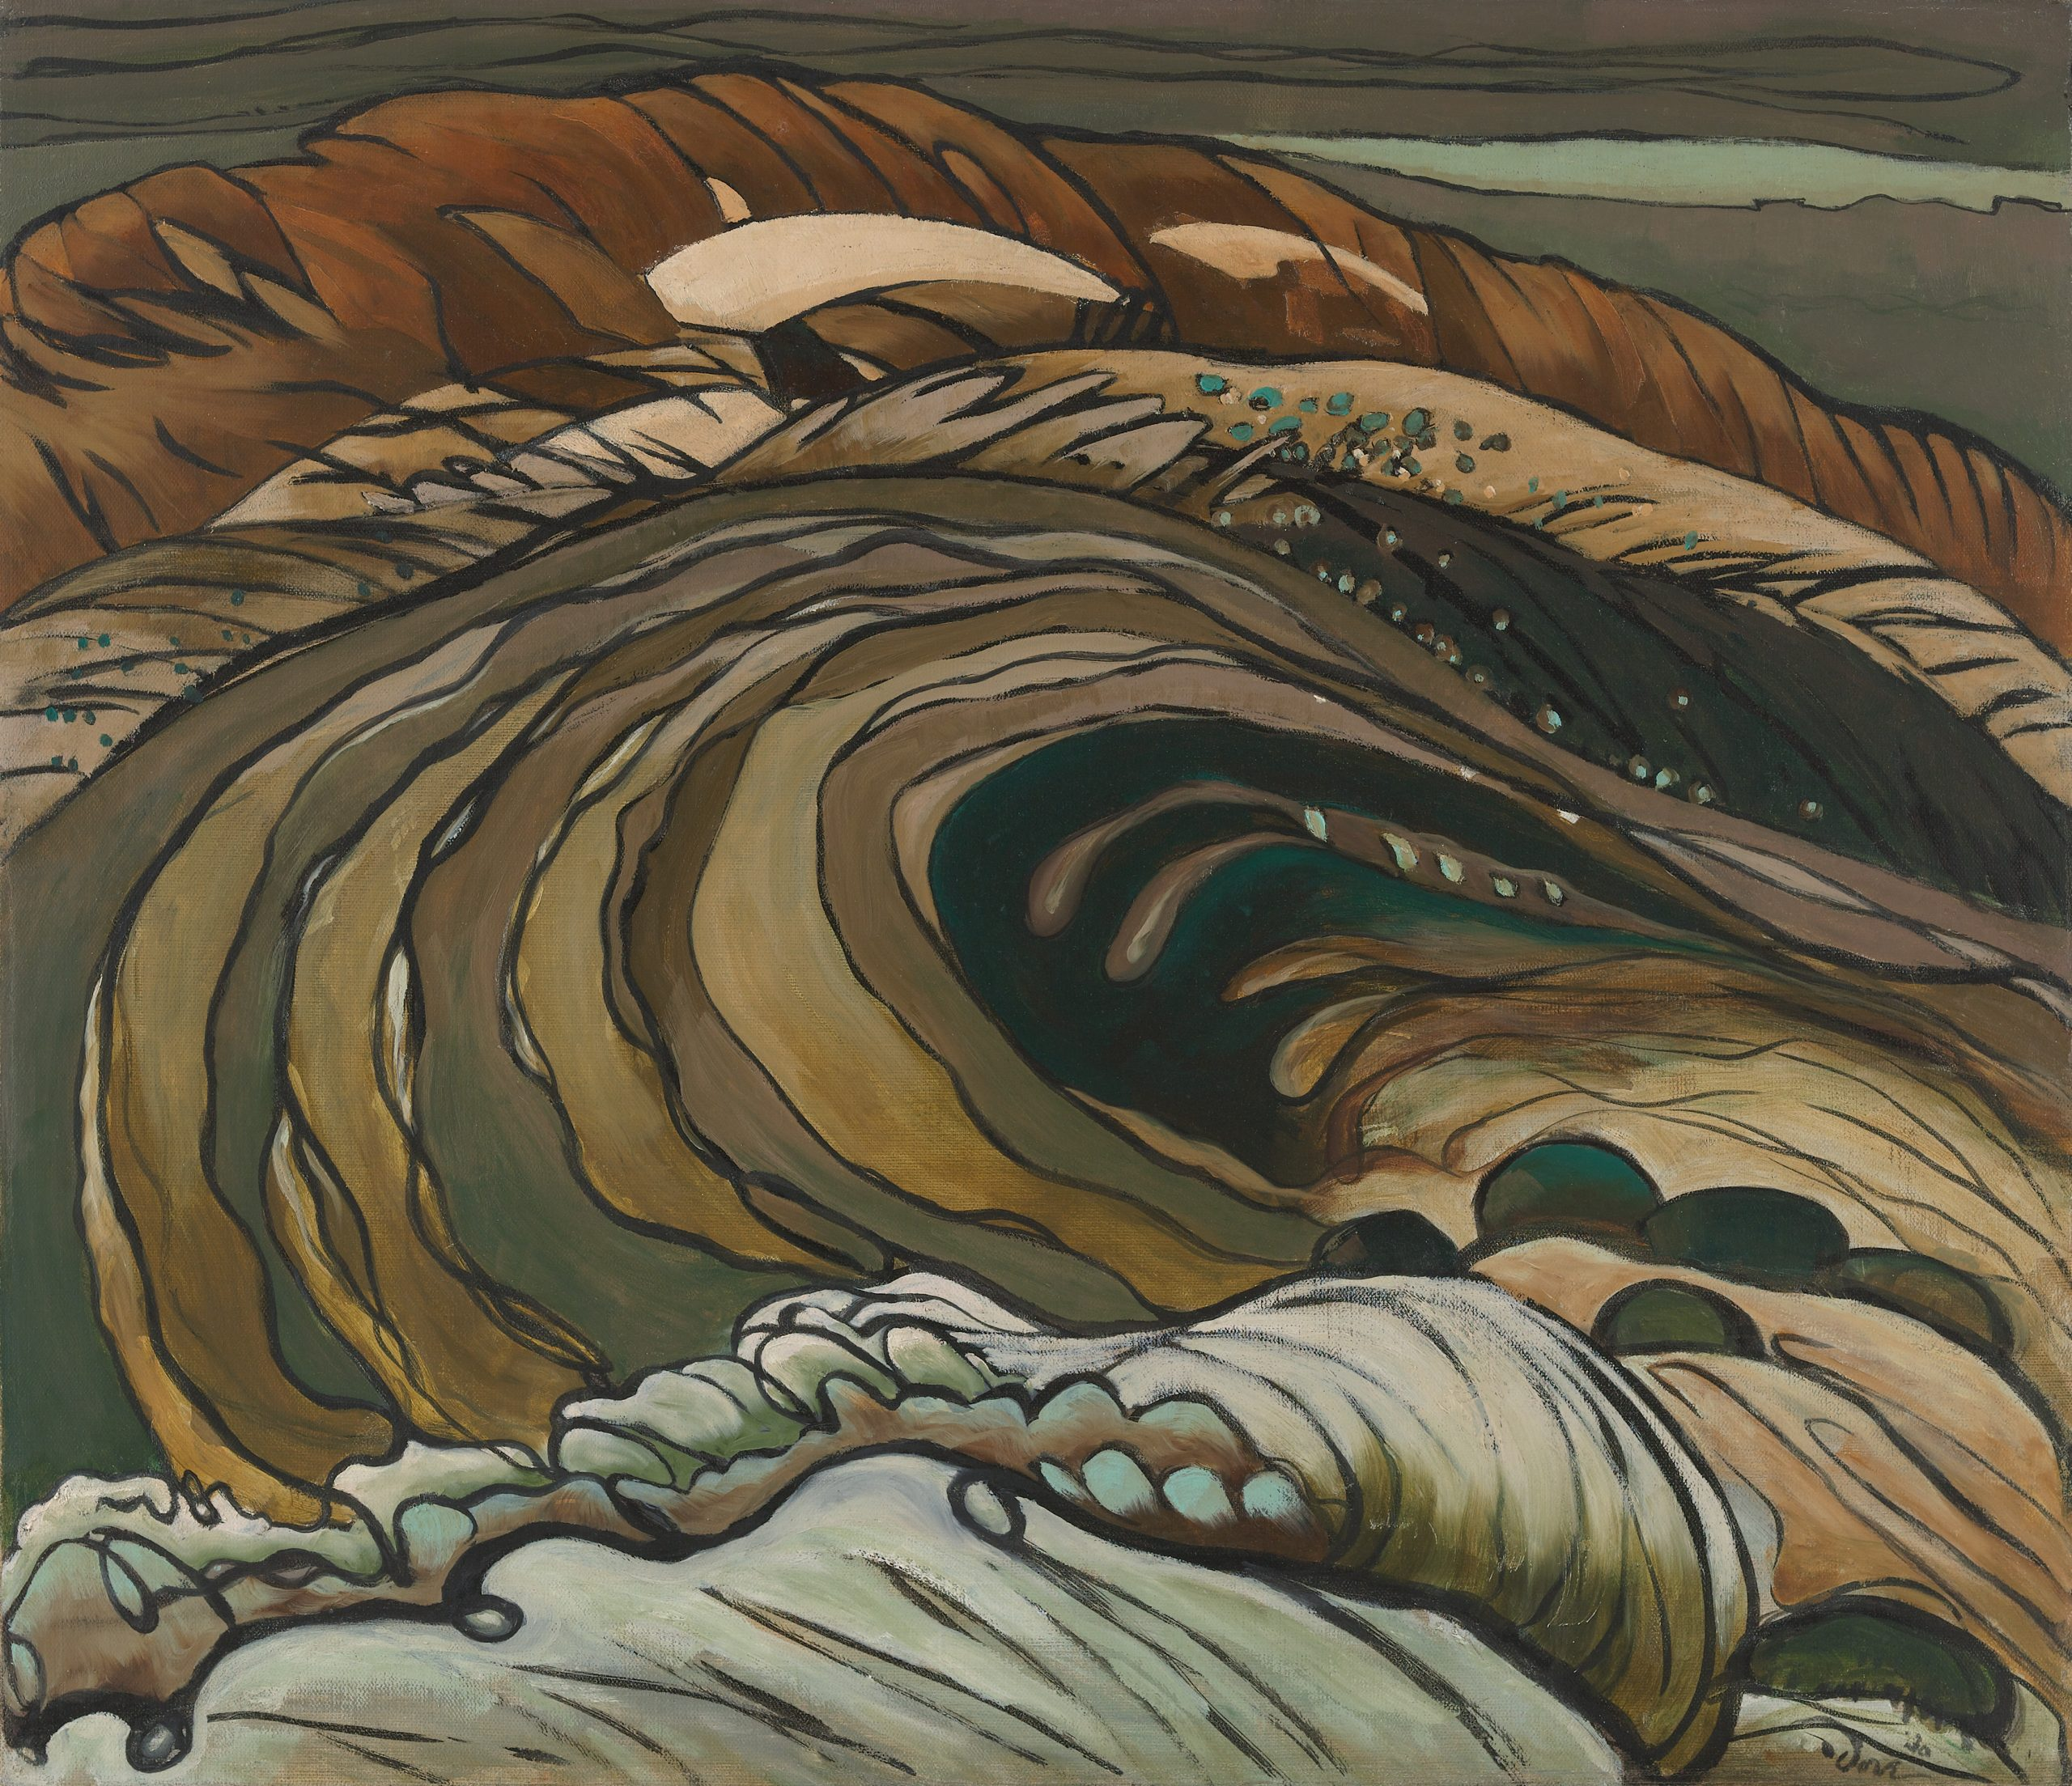 Tall brown and green waves accented by thick black lines, cresting into one another.